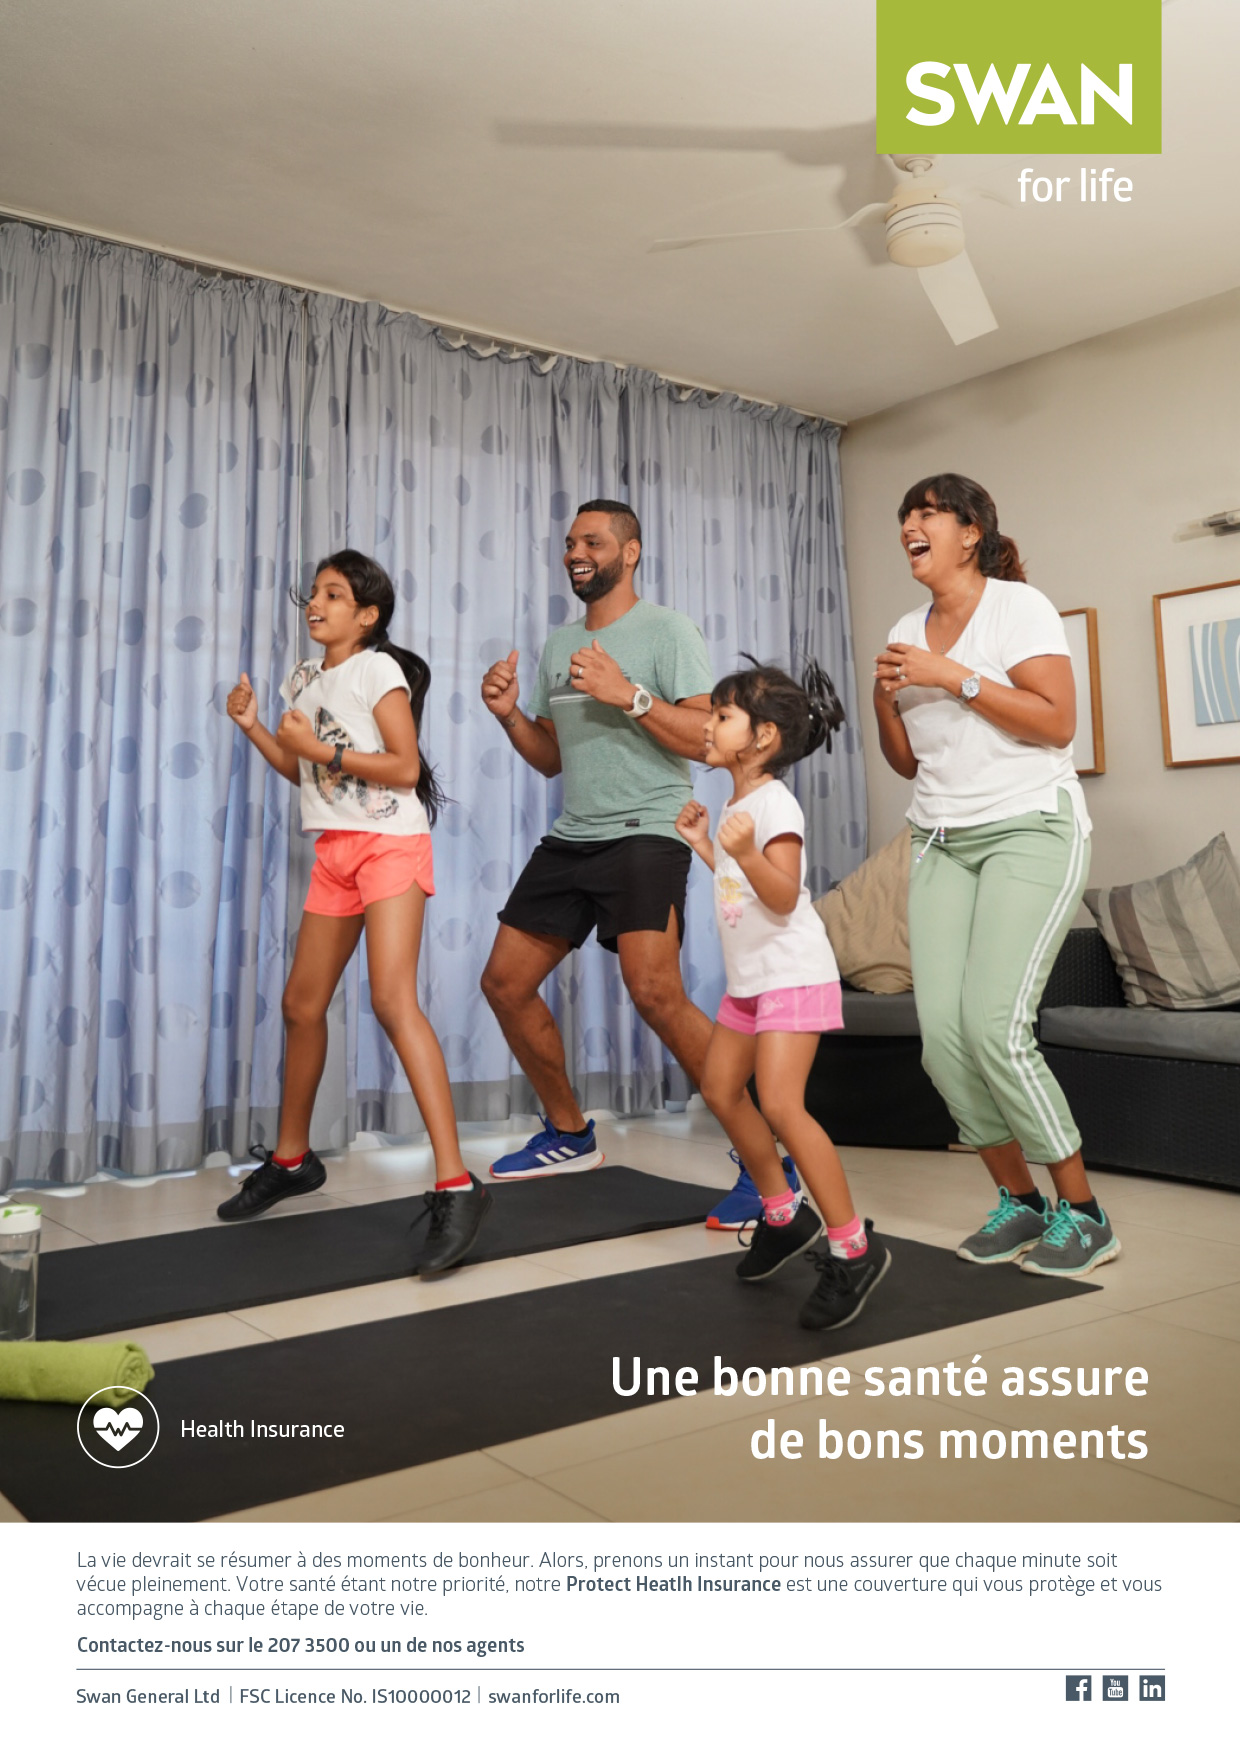 Health Insurance Mauritius Medical Insurance - SWAN for Life